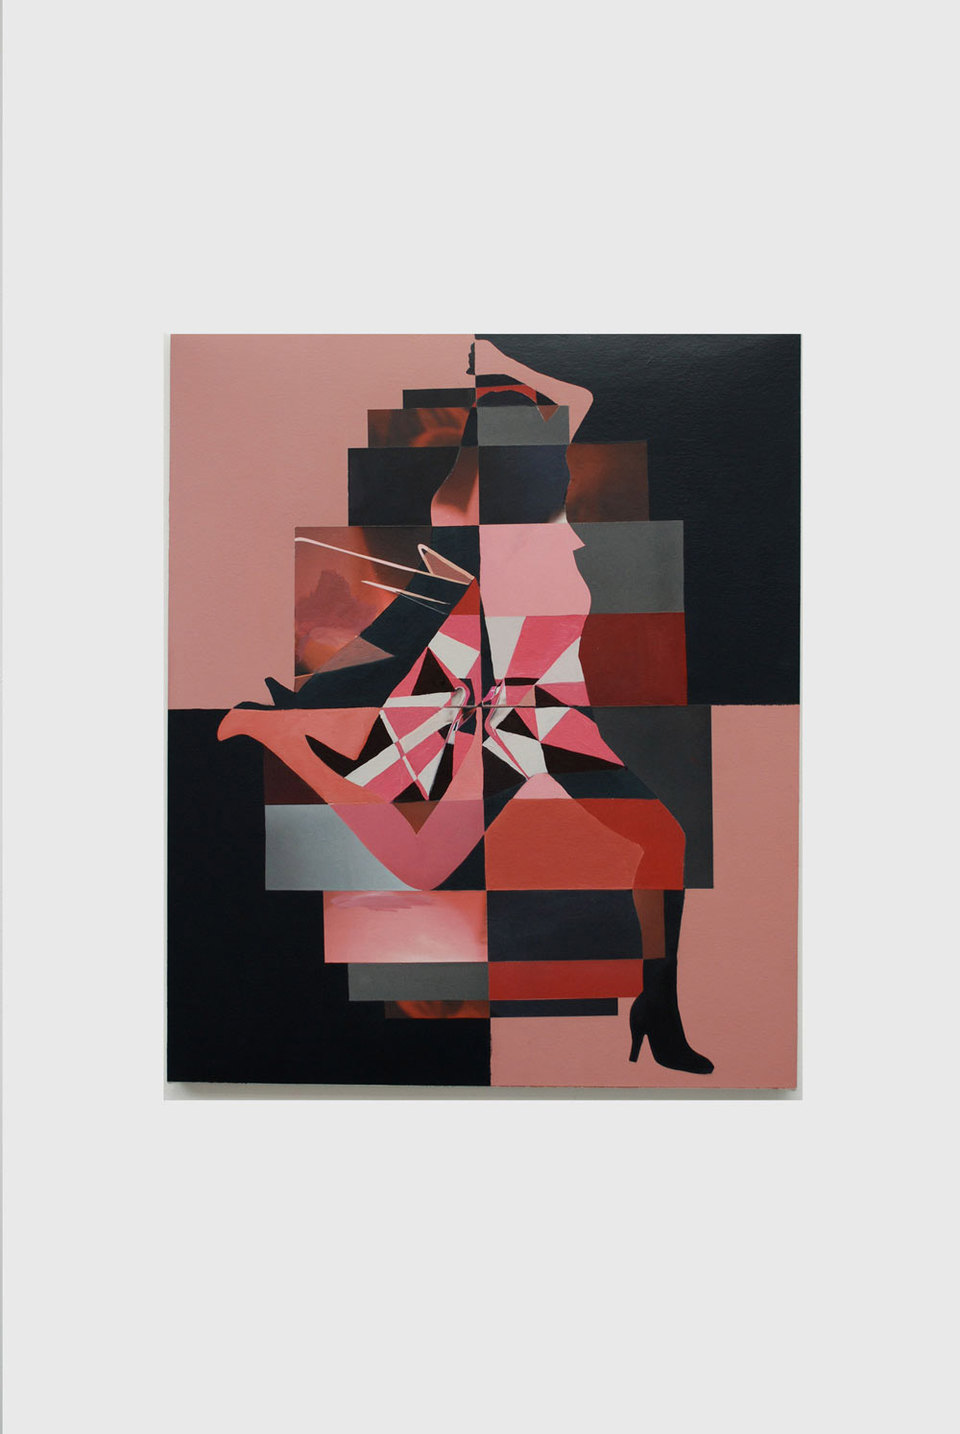 Andrew Child 'Untitled', 2008, acrylic and collage on canvas, 50 x 60 cm